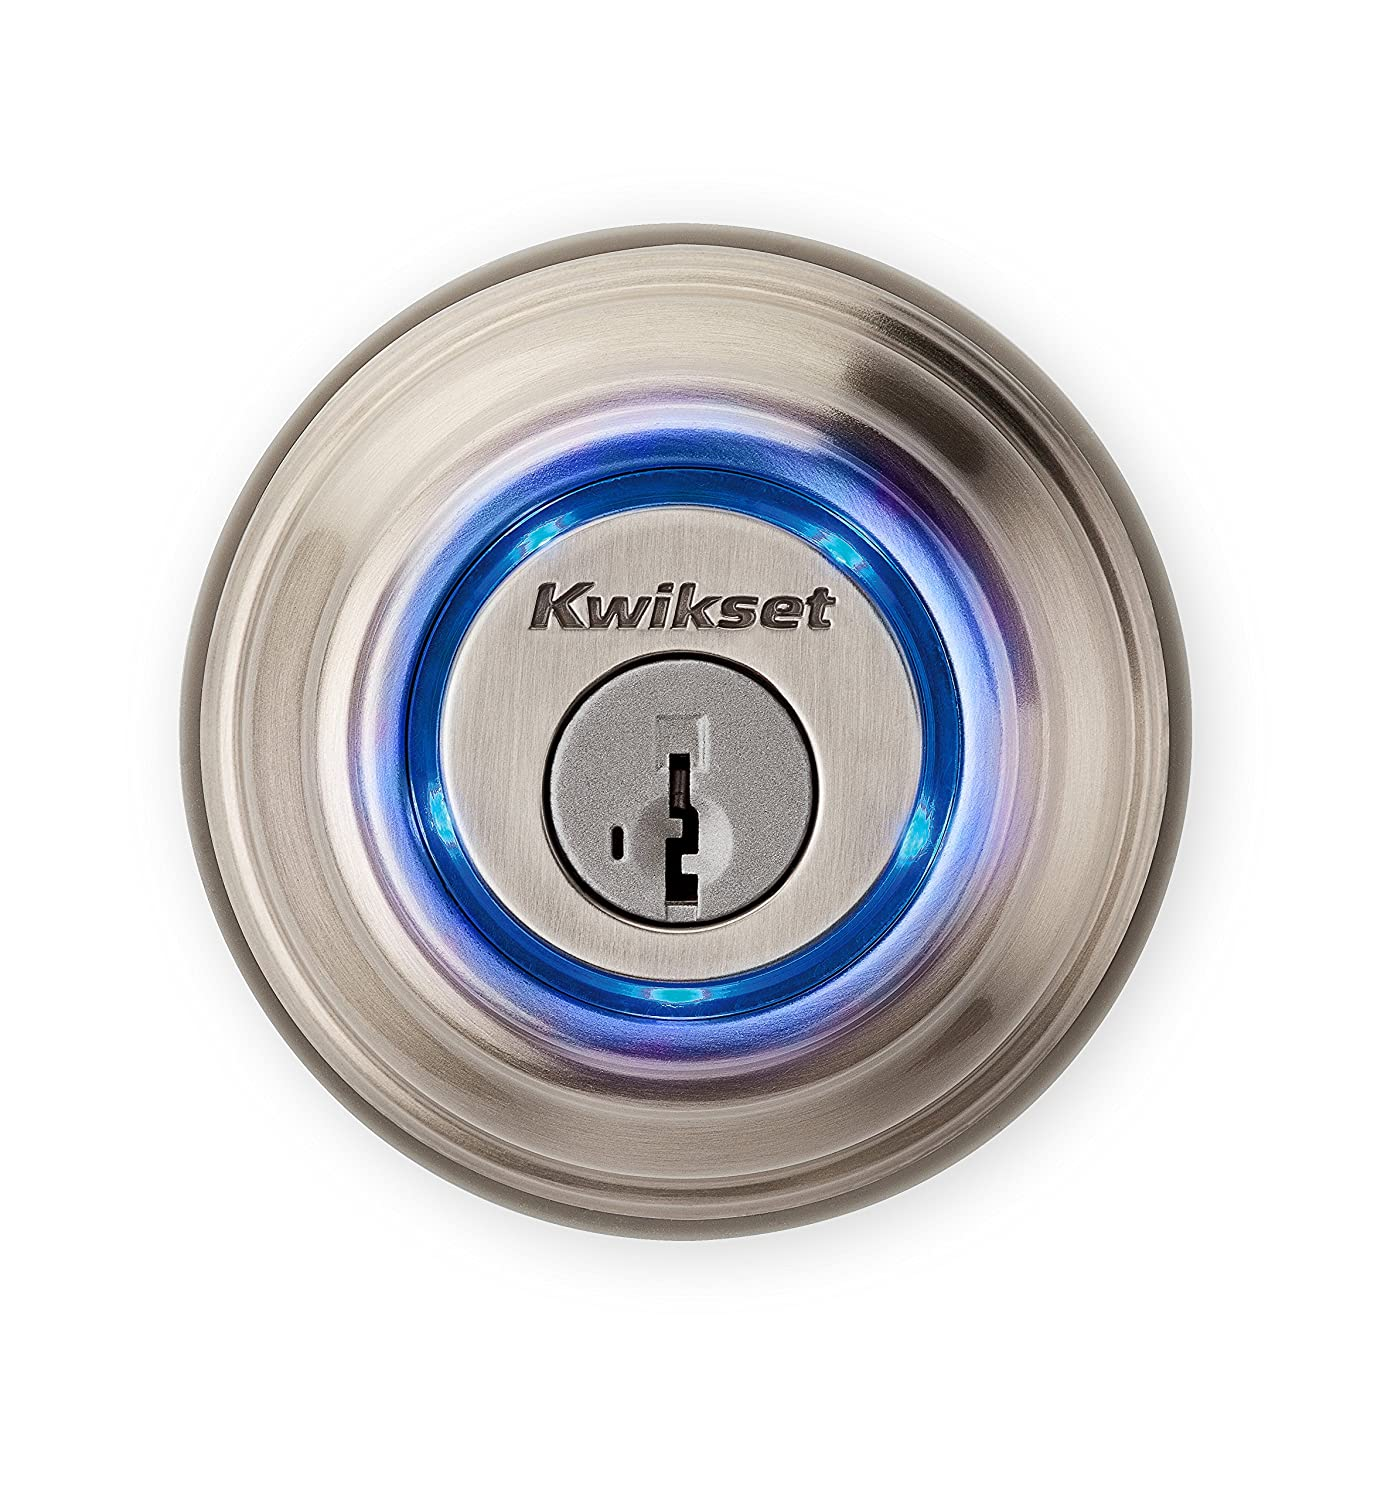 Kwikset - Kevo 2.0 Touch-to-Open Smart Lock in Satin Nickel